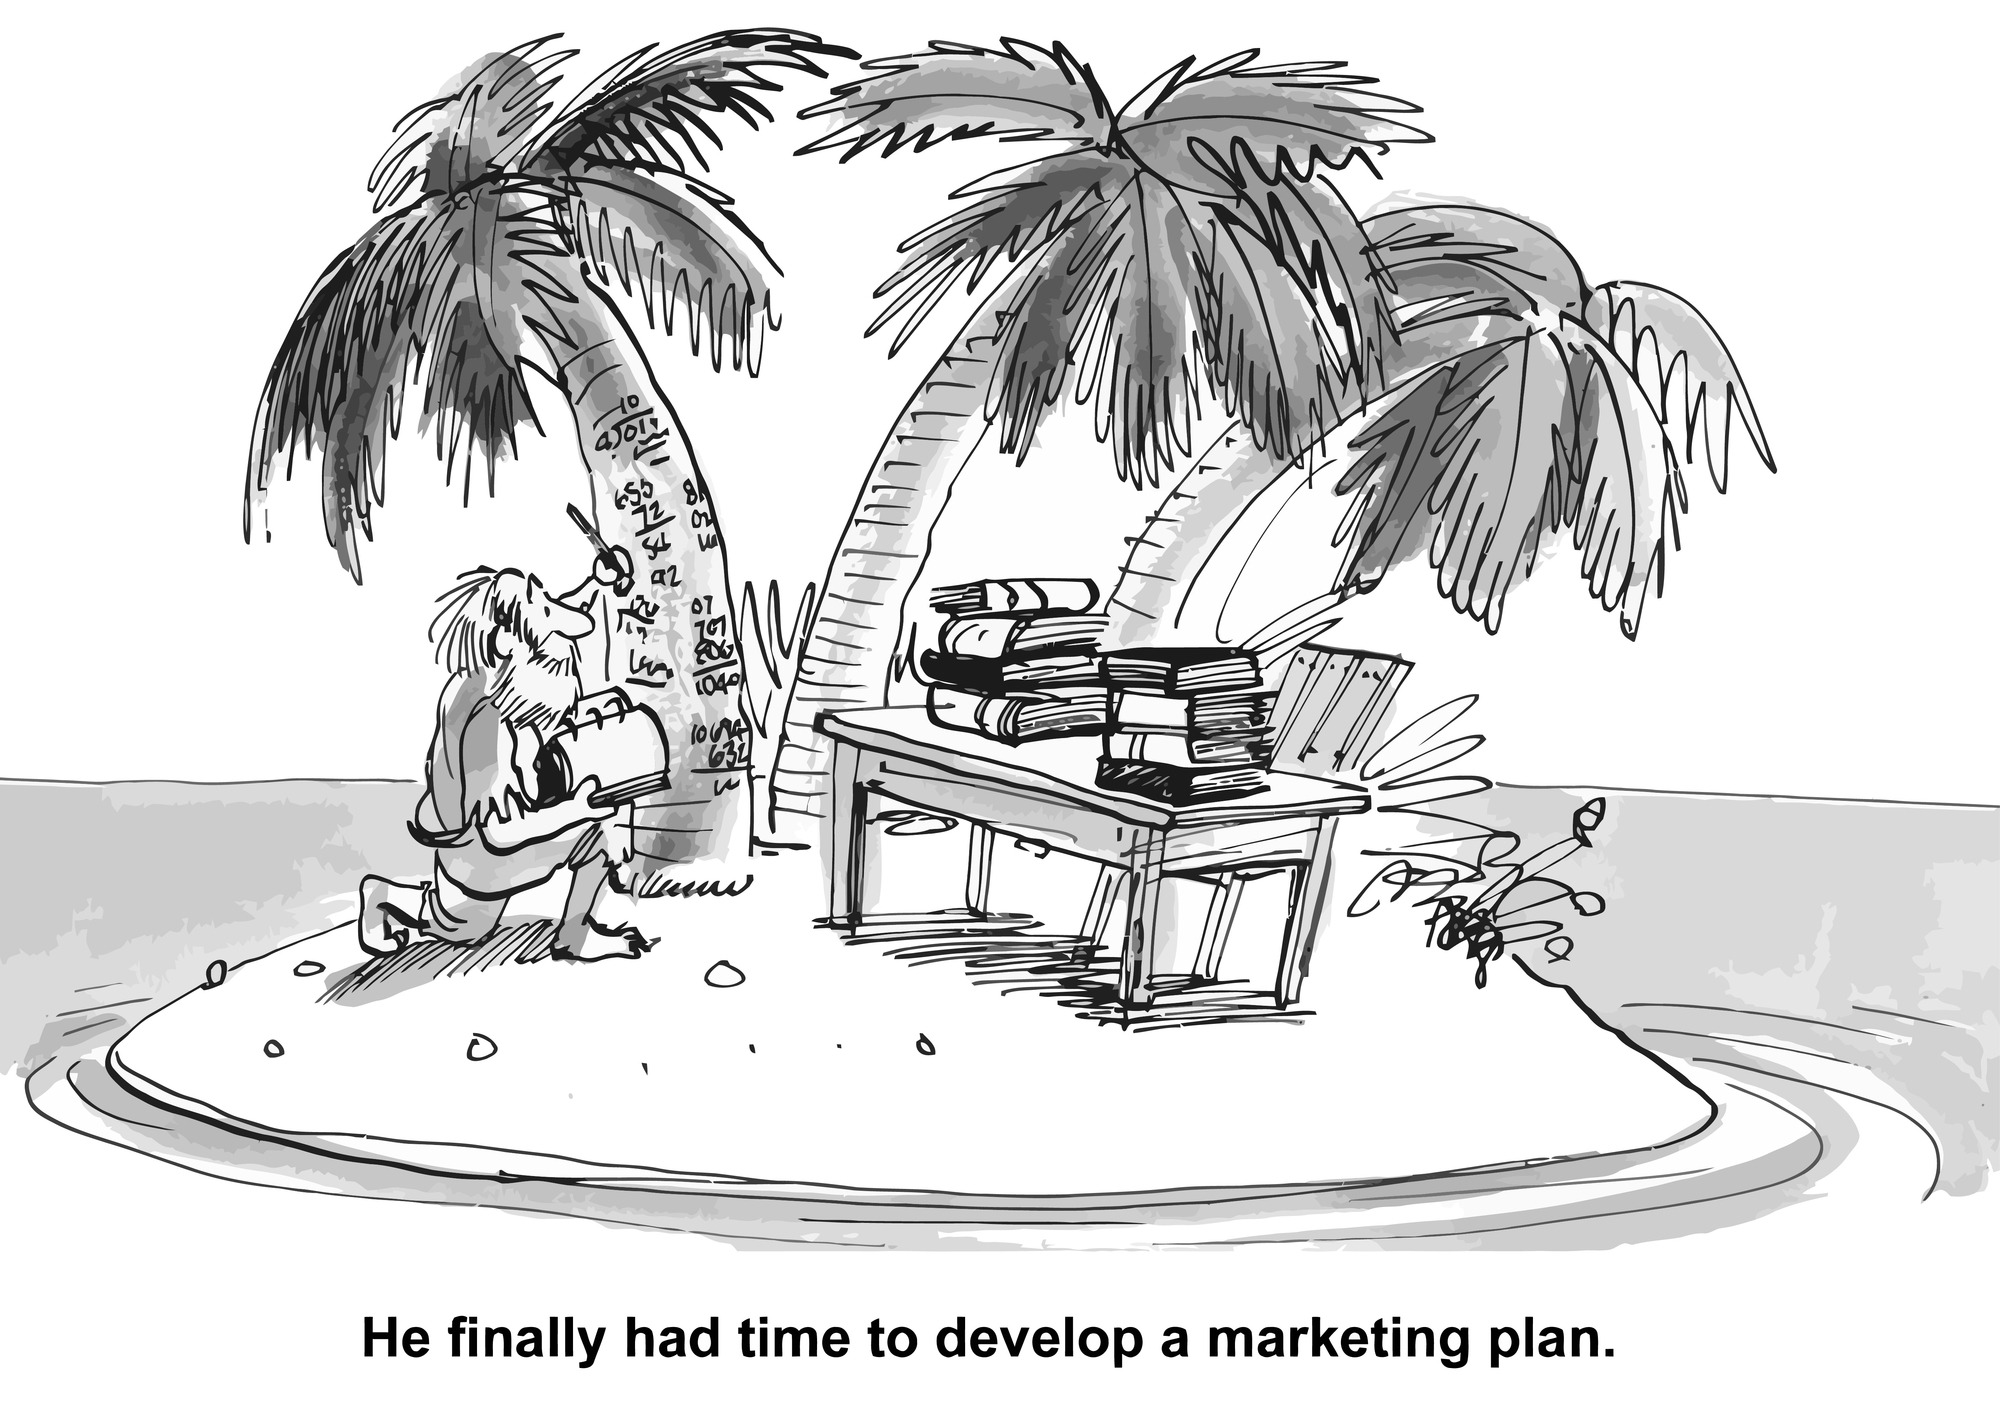 Time for a marketing plan